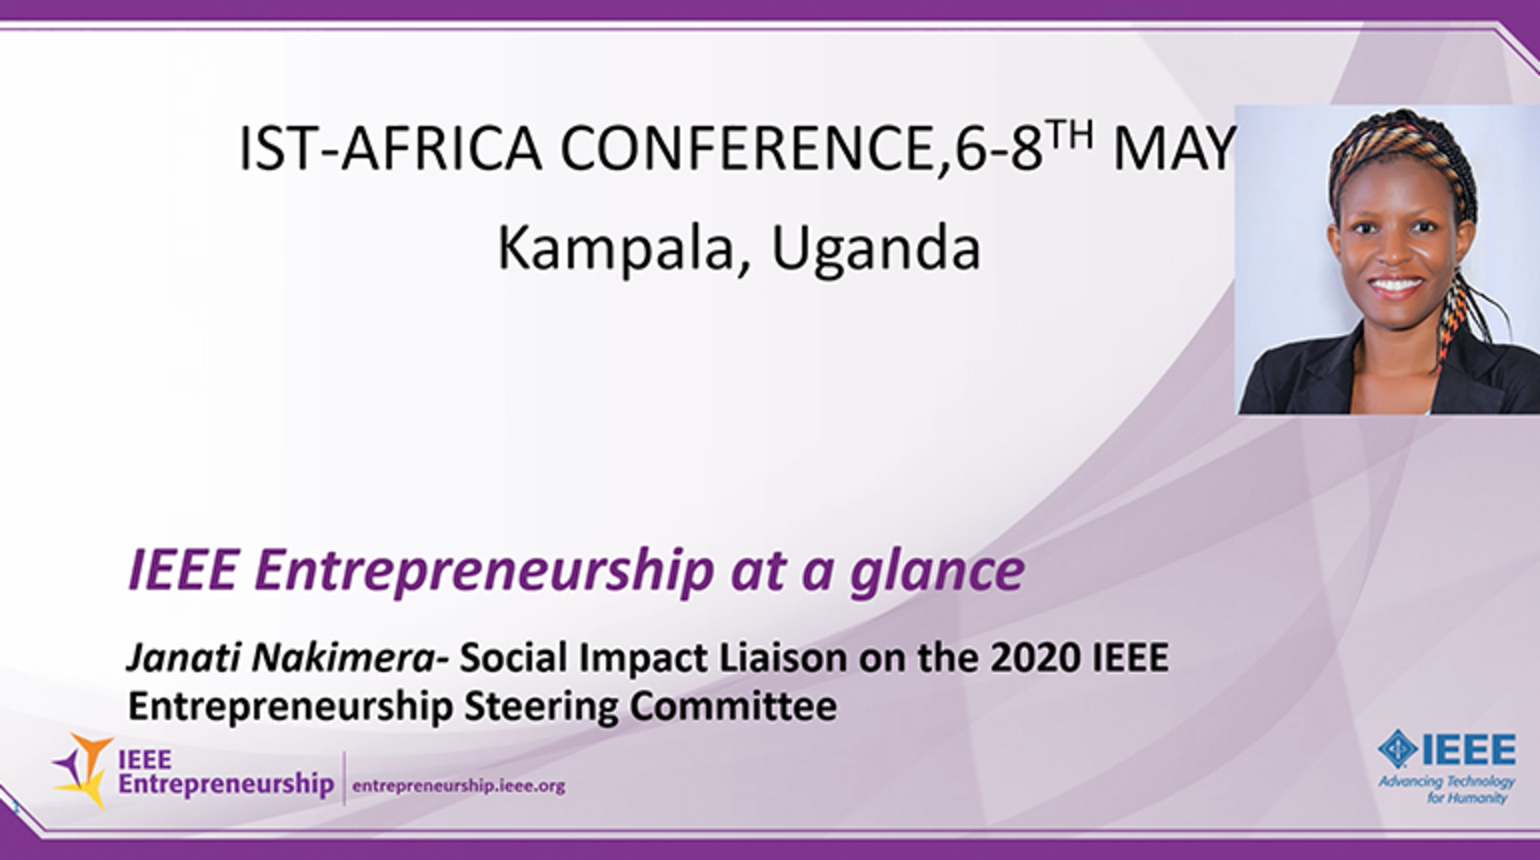 IST-Africa Conference | Entrepreneurial Sessions - IEEE Entrepreneurship at a Glance